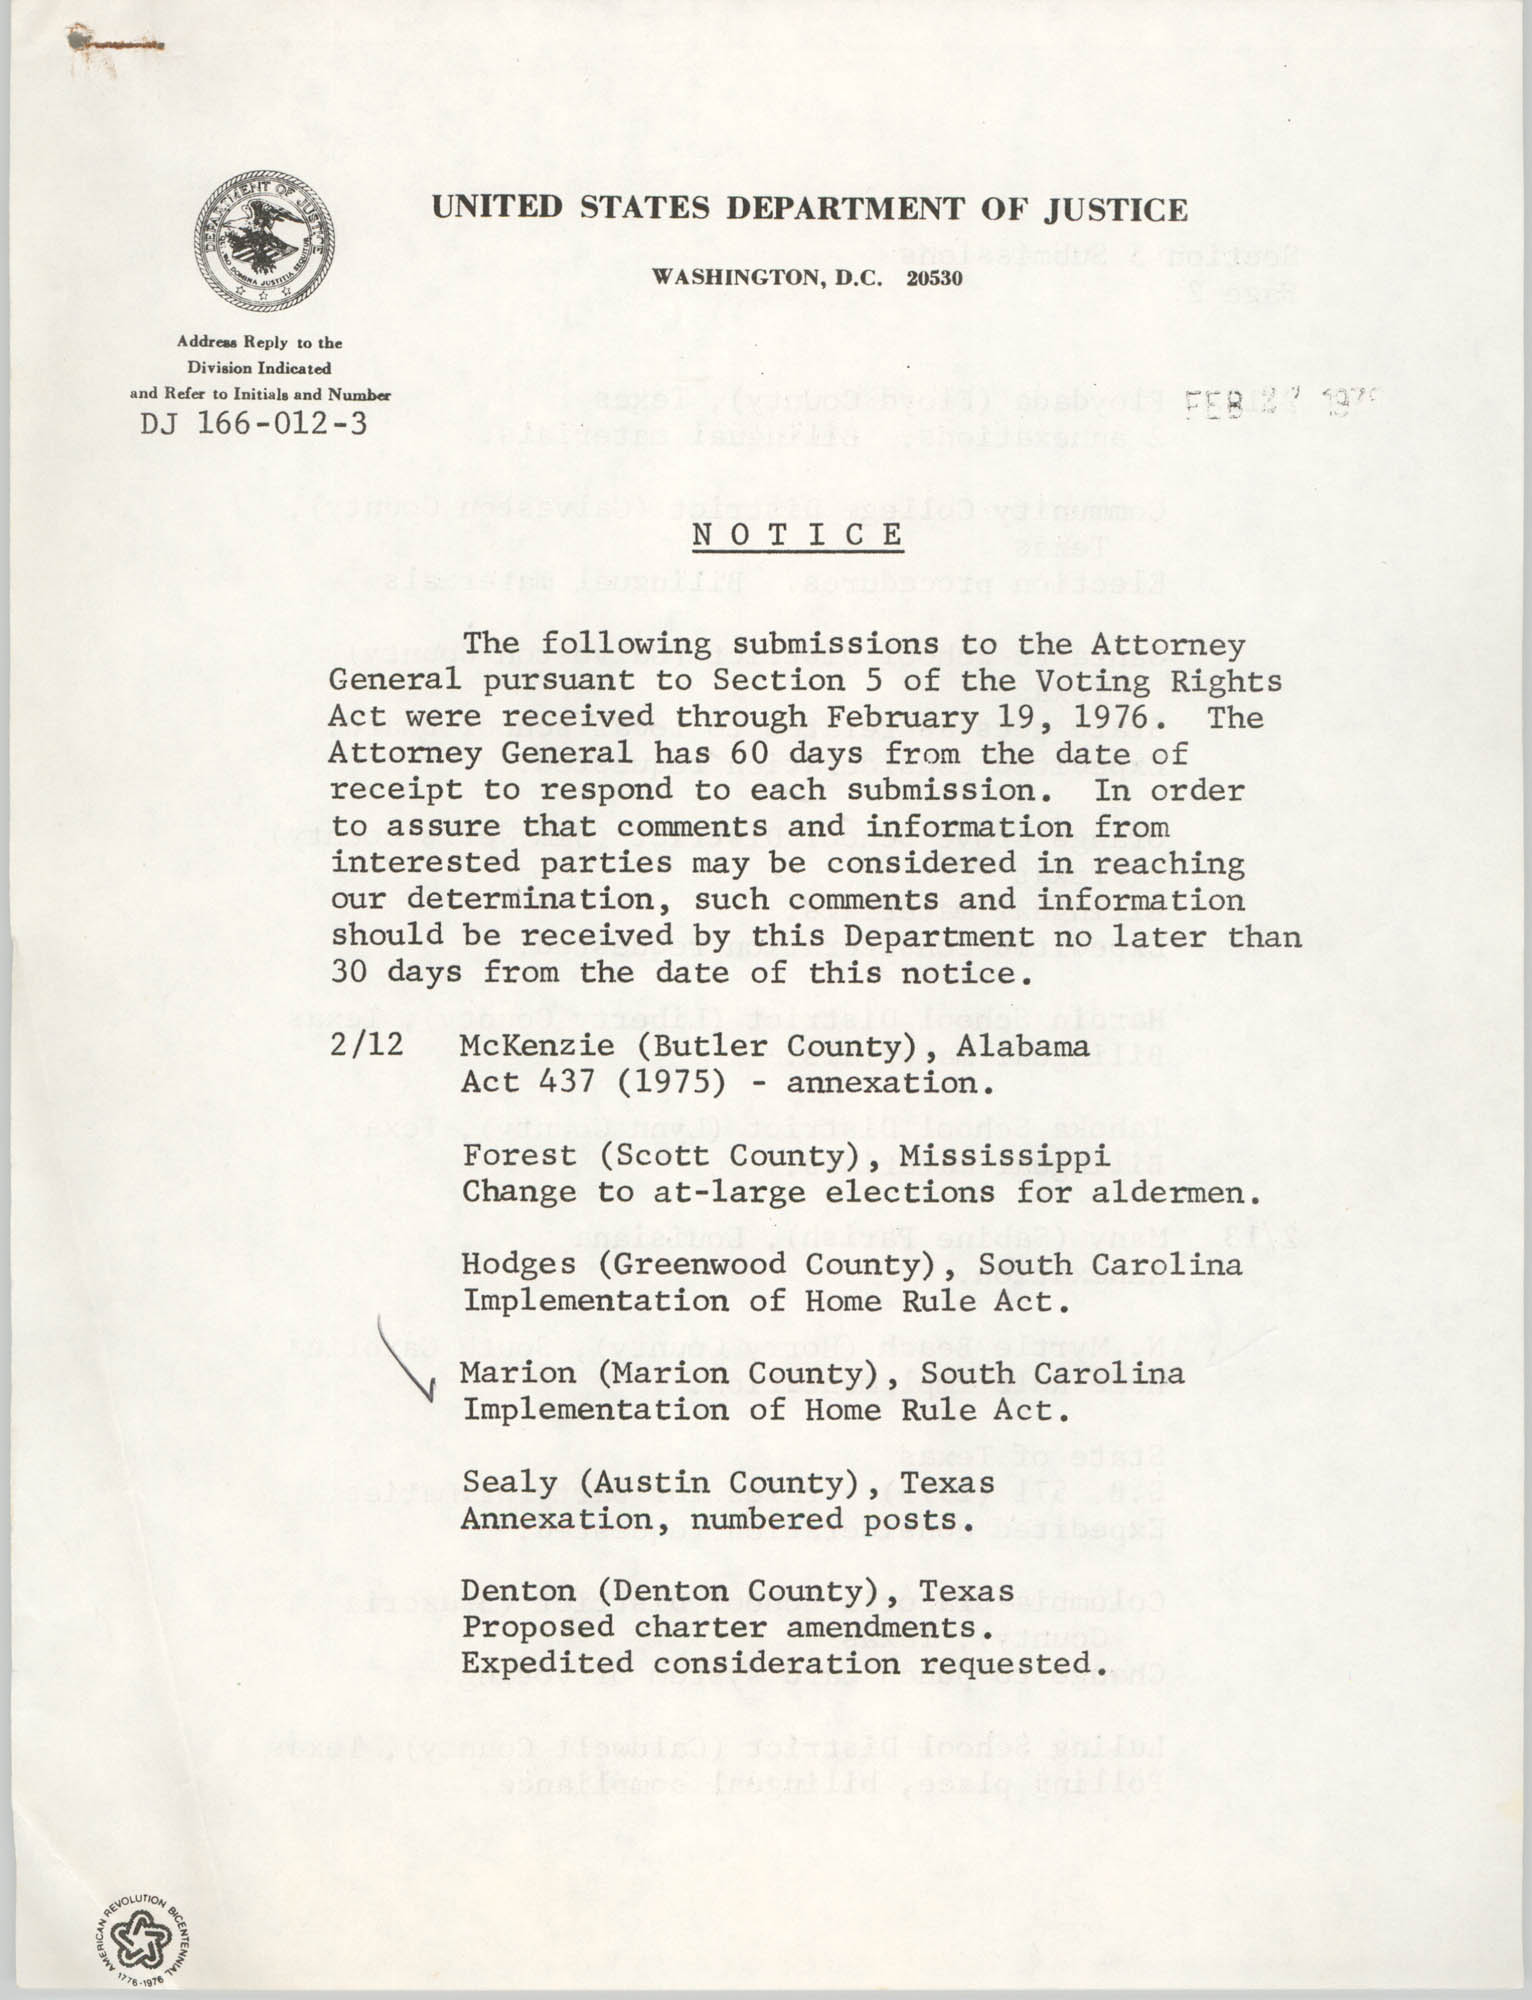 United States Department of Justice Notice, February 27, 1976